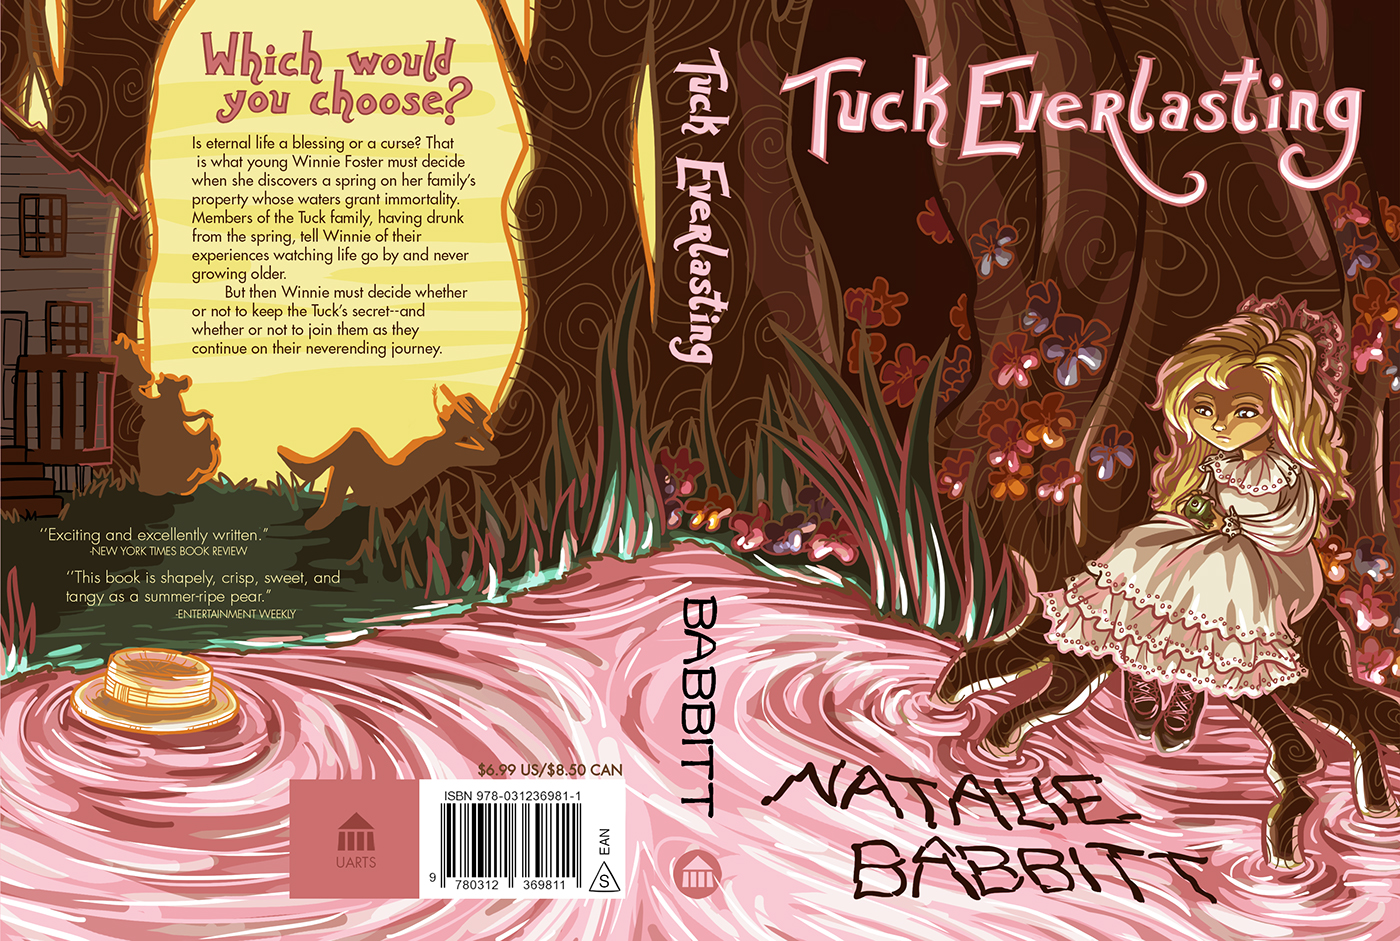 Tuck Everlasting Book Cover Pictures ~ Tuck everlasting on behance